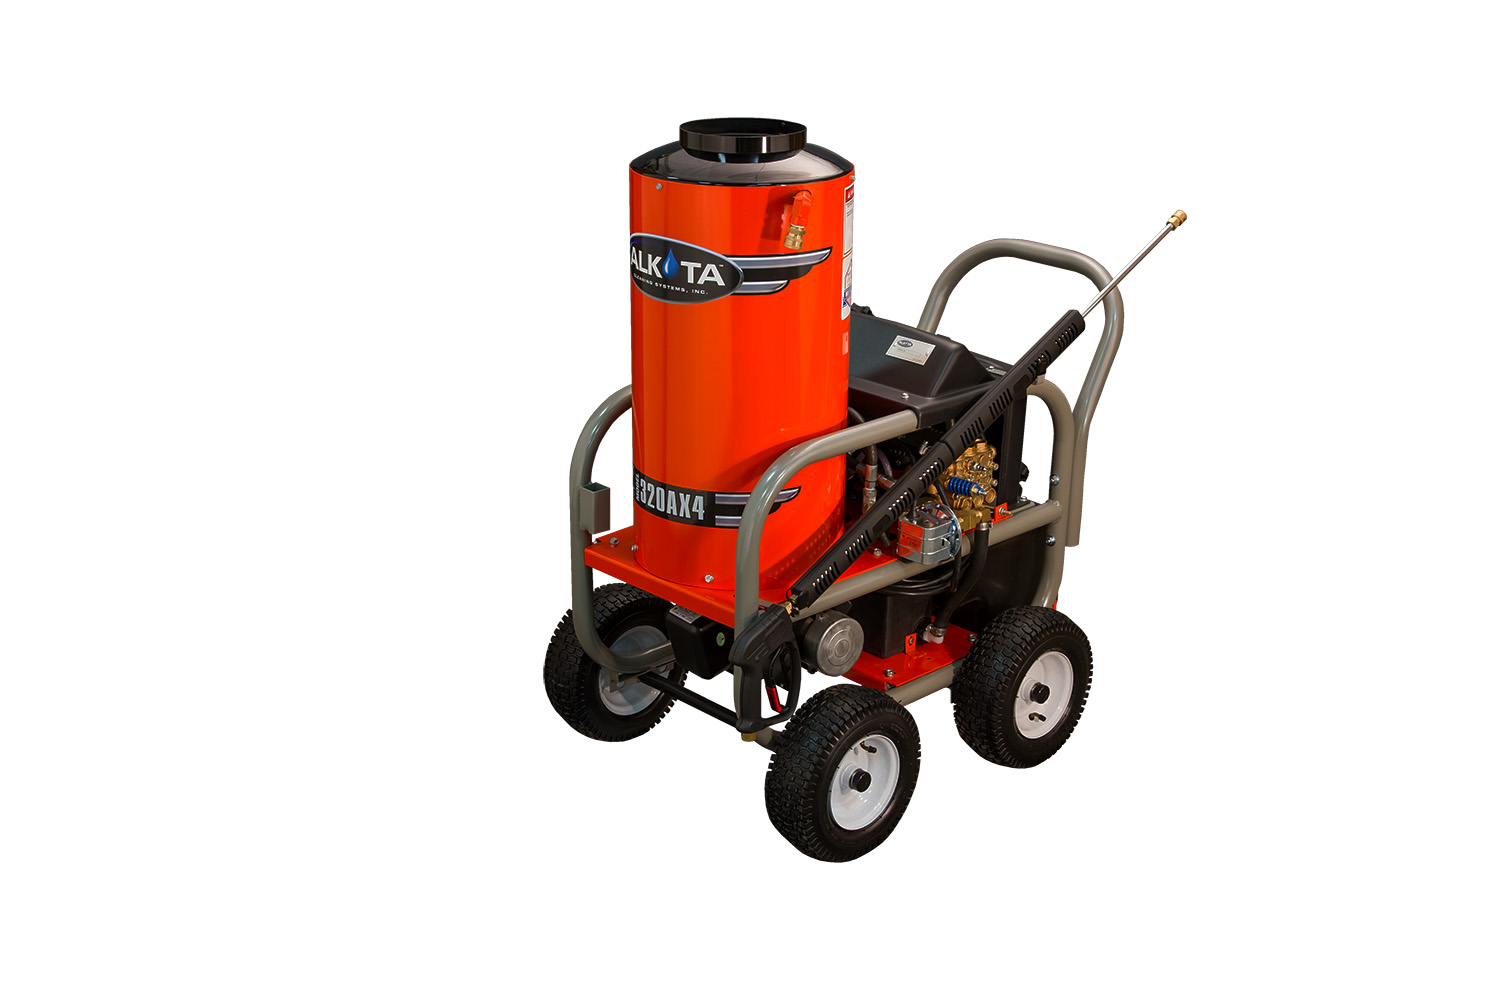 hight resolution of pressure washer hot water 320ax4 alkota alkota cleaning systemspressure washer hot water 320ax4 alkota agriculture pressure